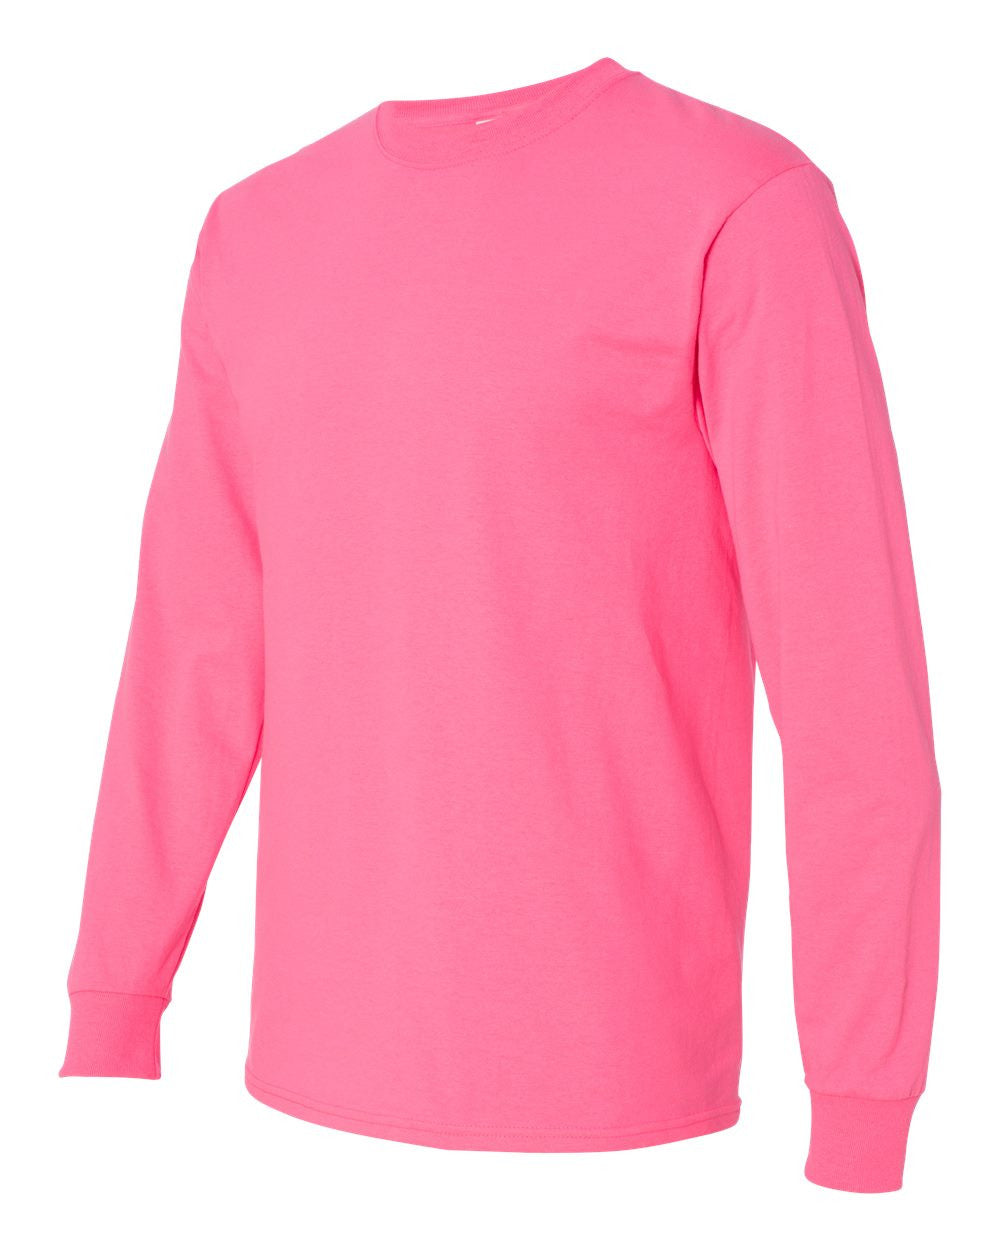 3 pack : Long sleeves Men's T-shirts  by Fruit of the Loom - Discountedrack.com